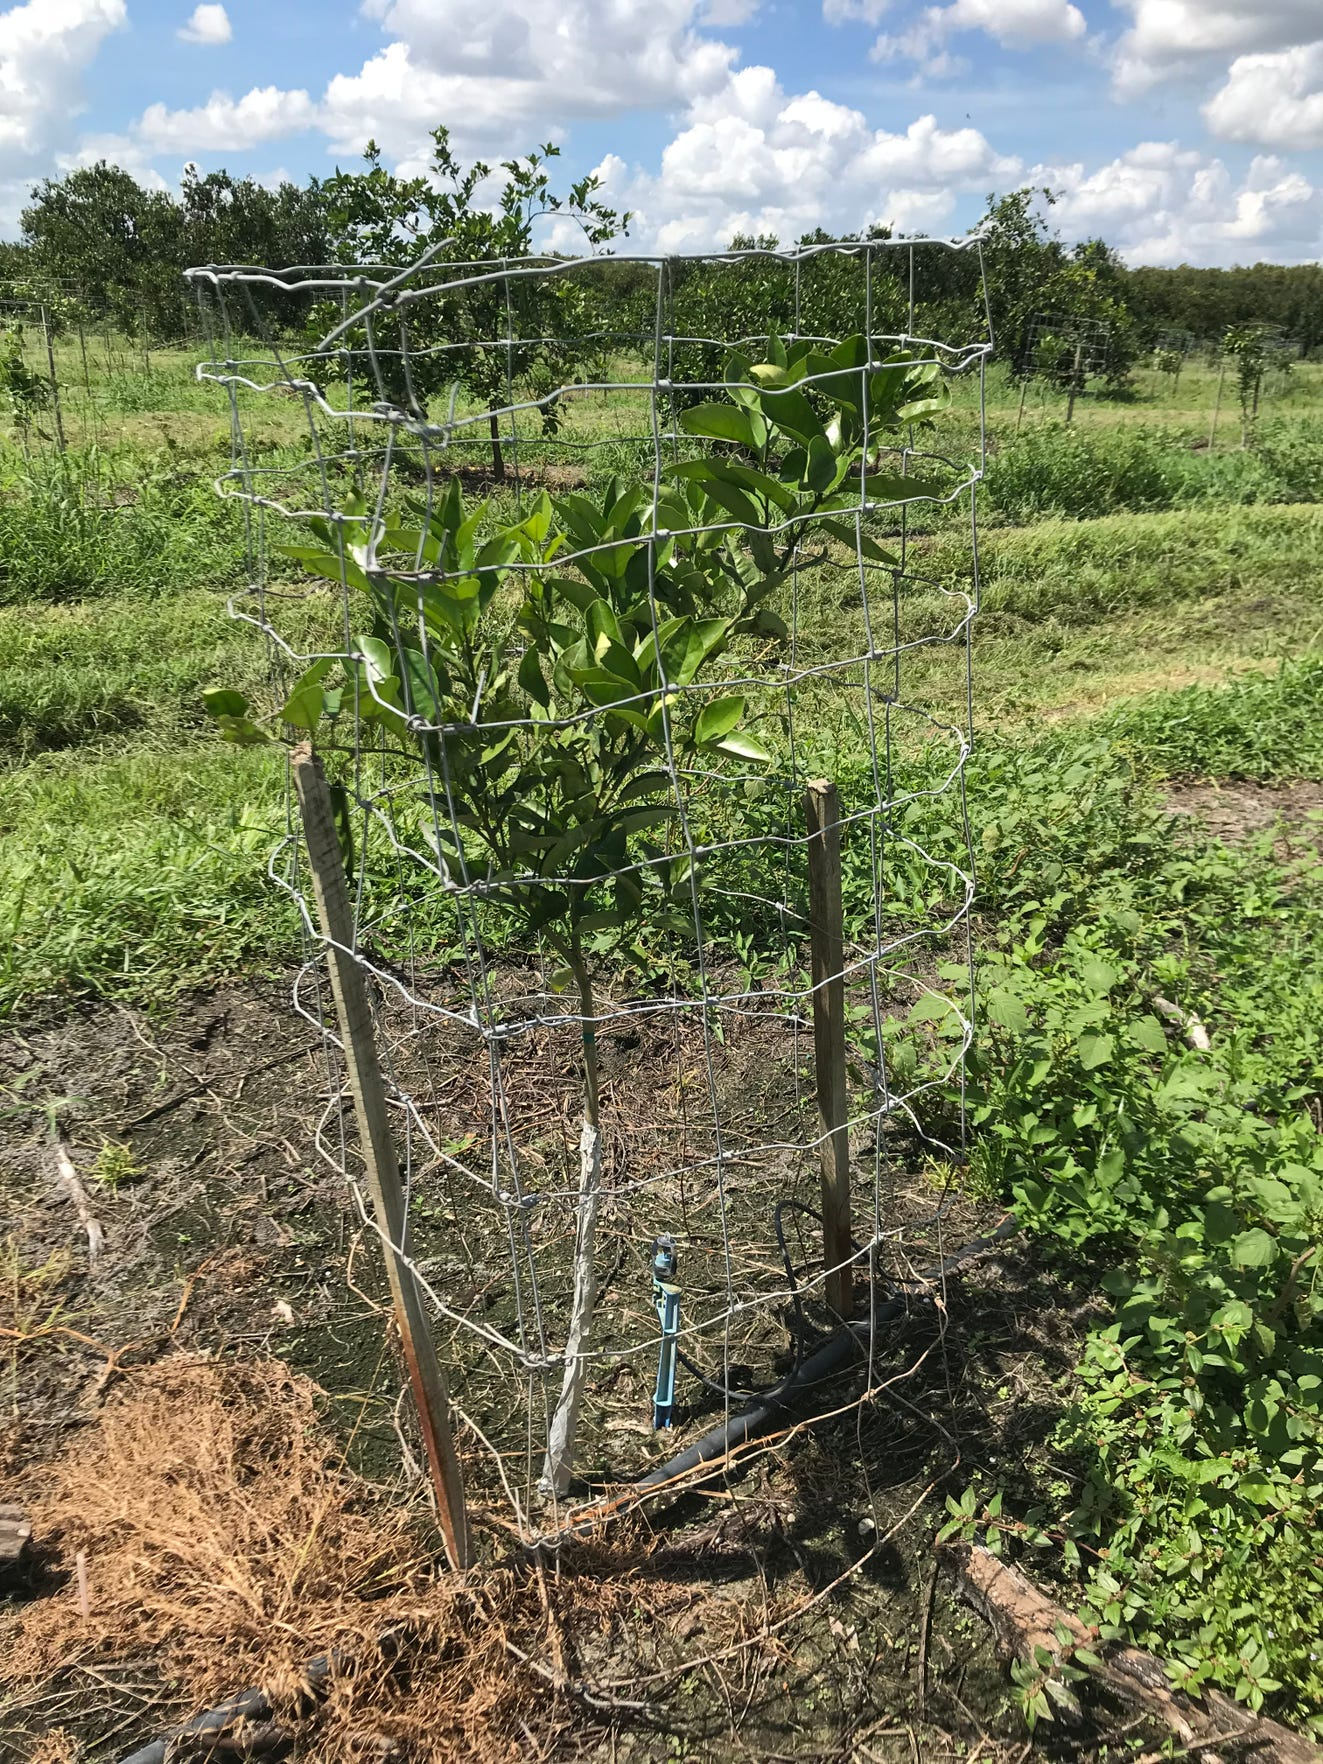 A young Valencia tree replanted in a row that was badly damaged by Hurricane Irma at Bear Hammock Grove off Immokalee Road, near Corkscrew Swamp Sanctuary. The grove suffered the most harm to the east of the storm's eyewall.